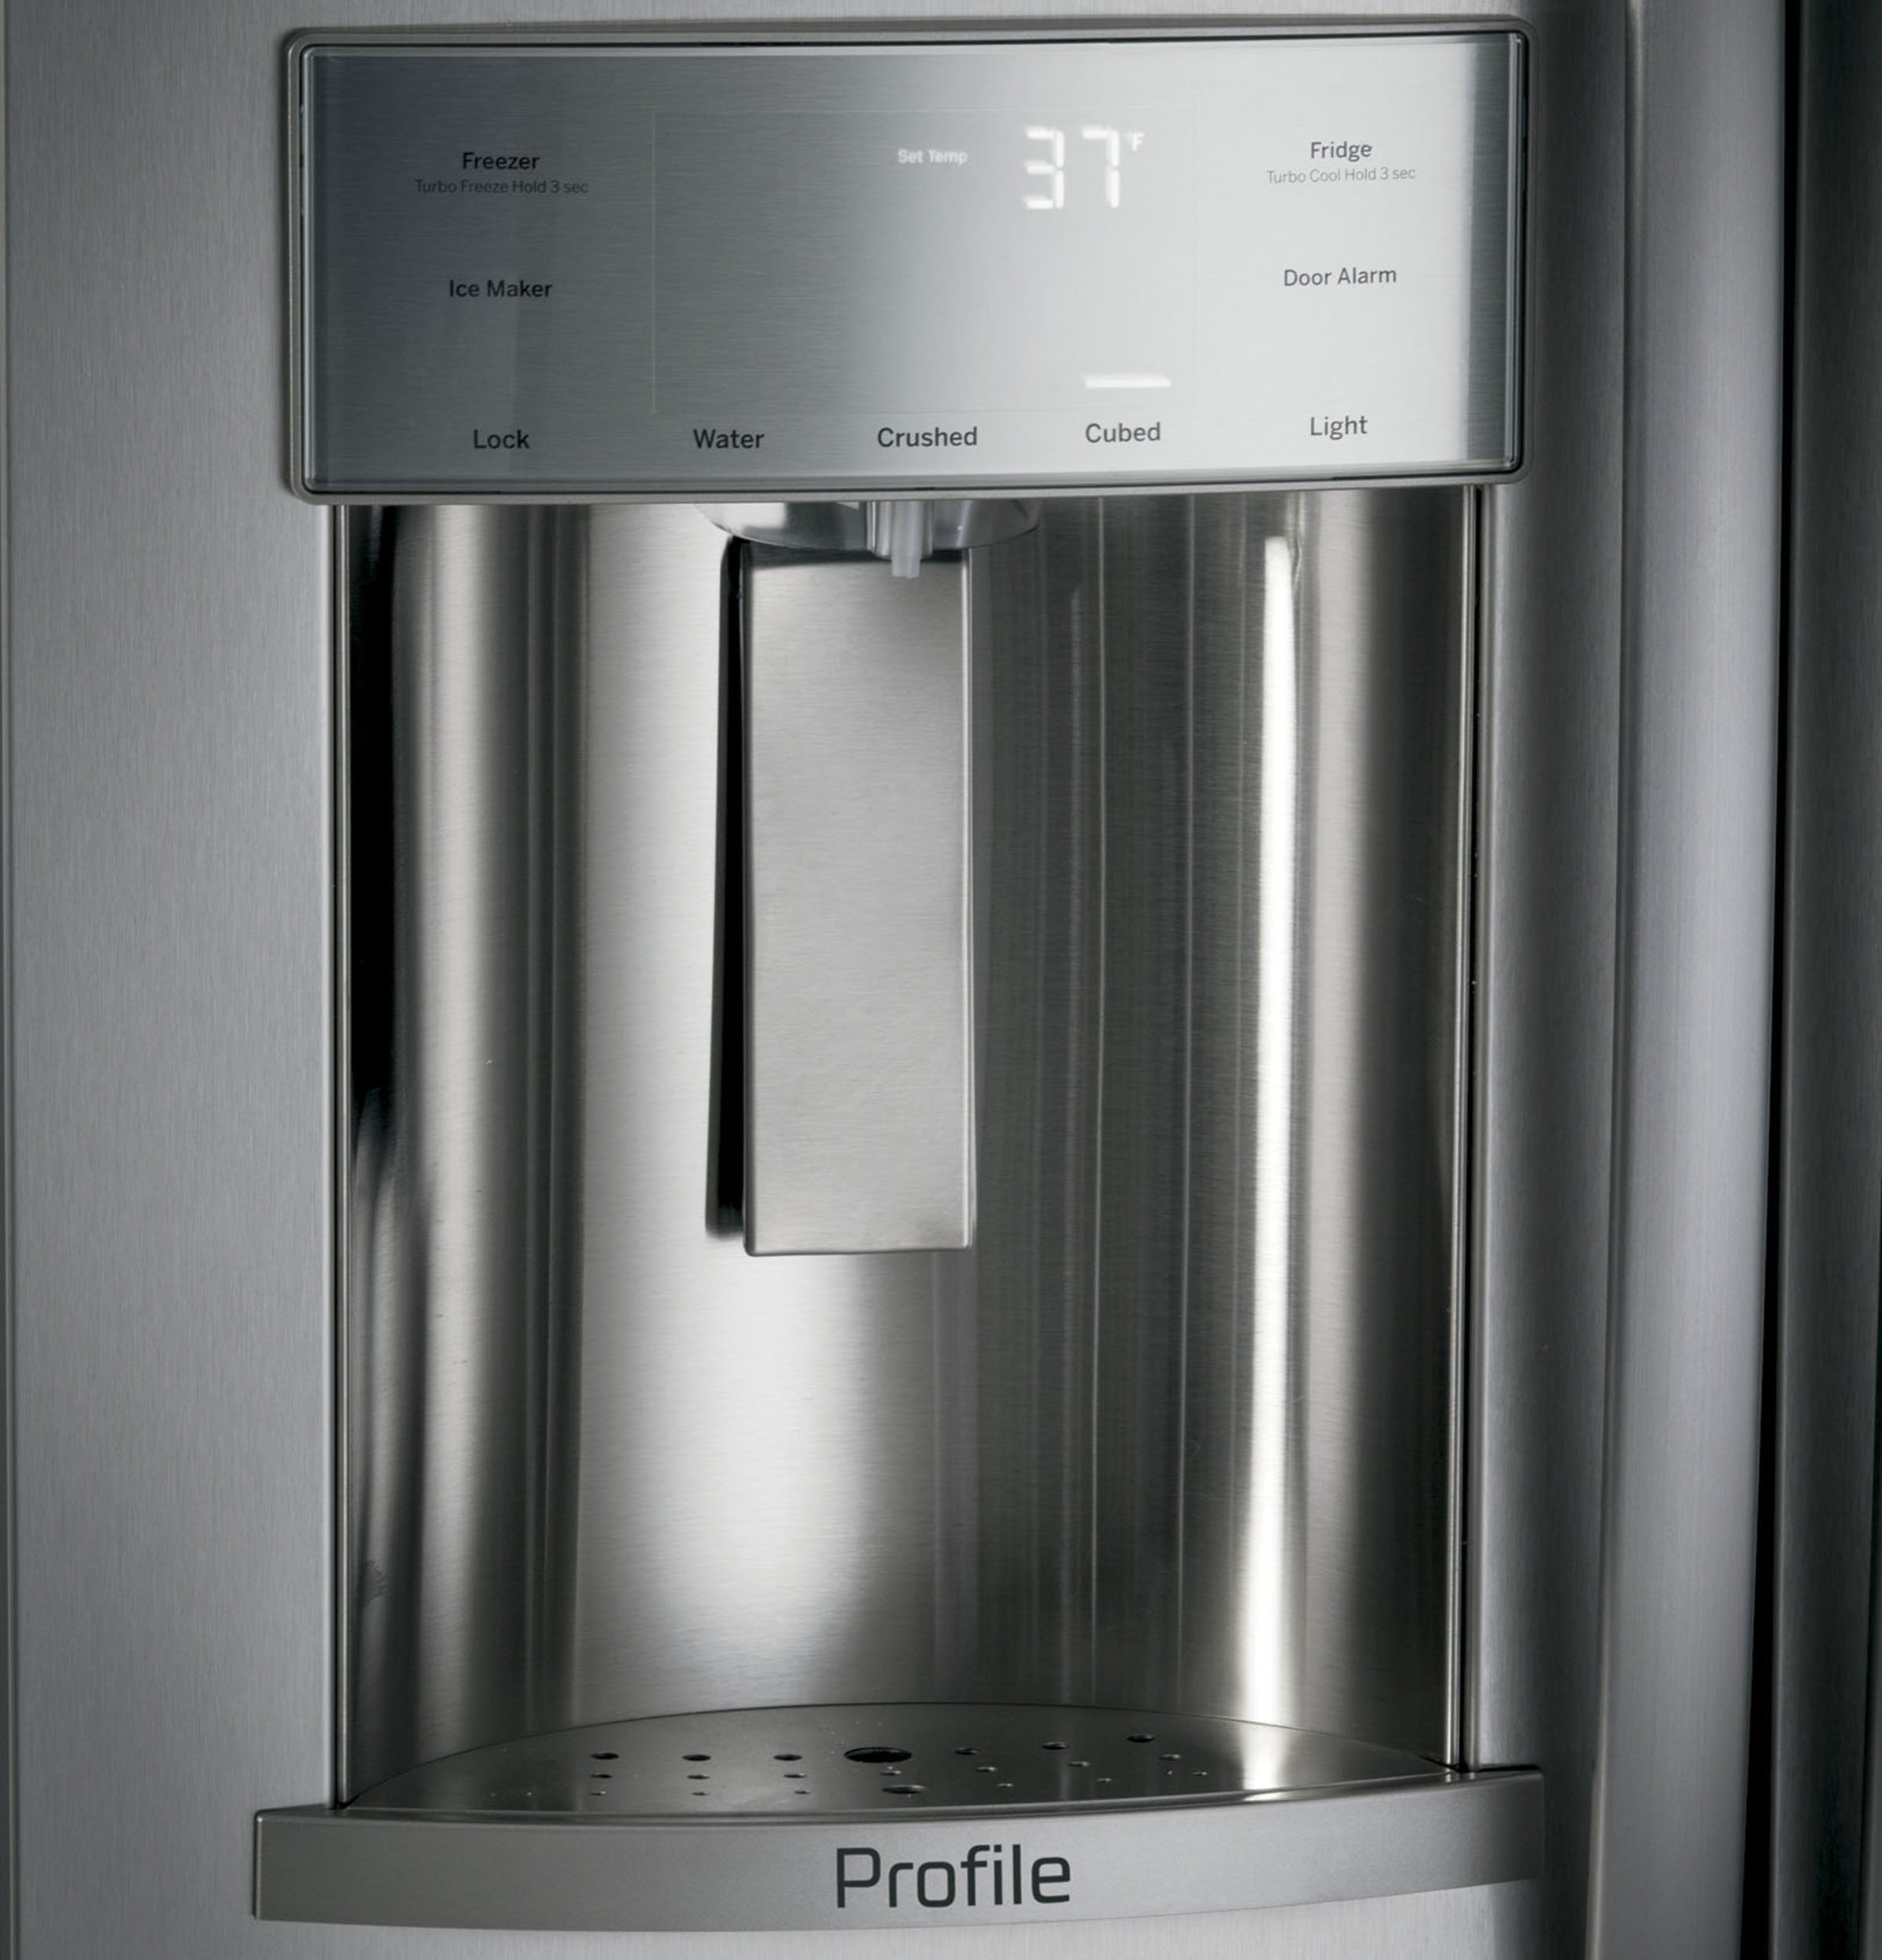 Side by side refrigerator no water dispenser - Product Image Product Image Product Image